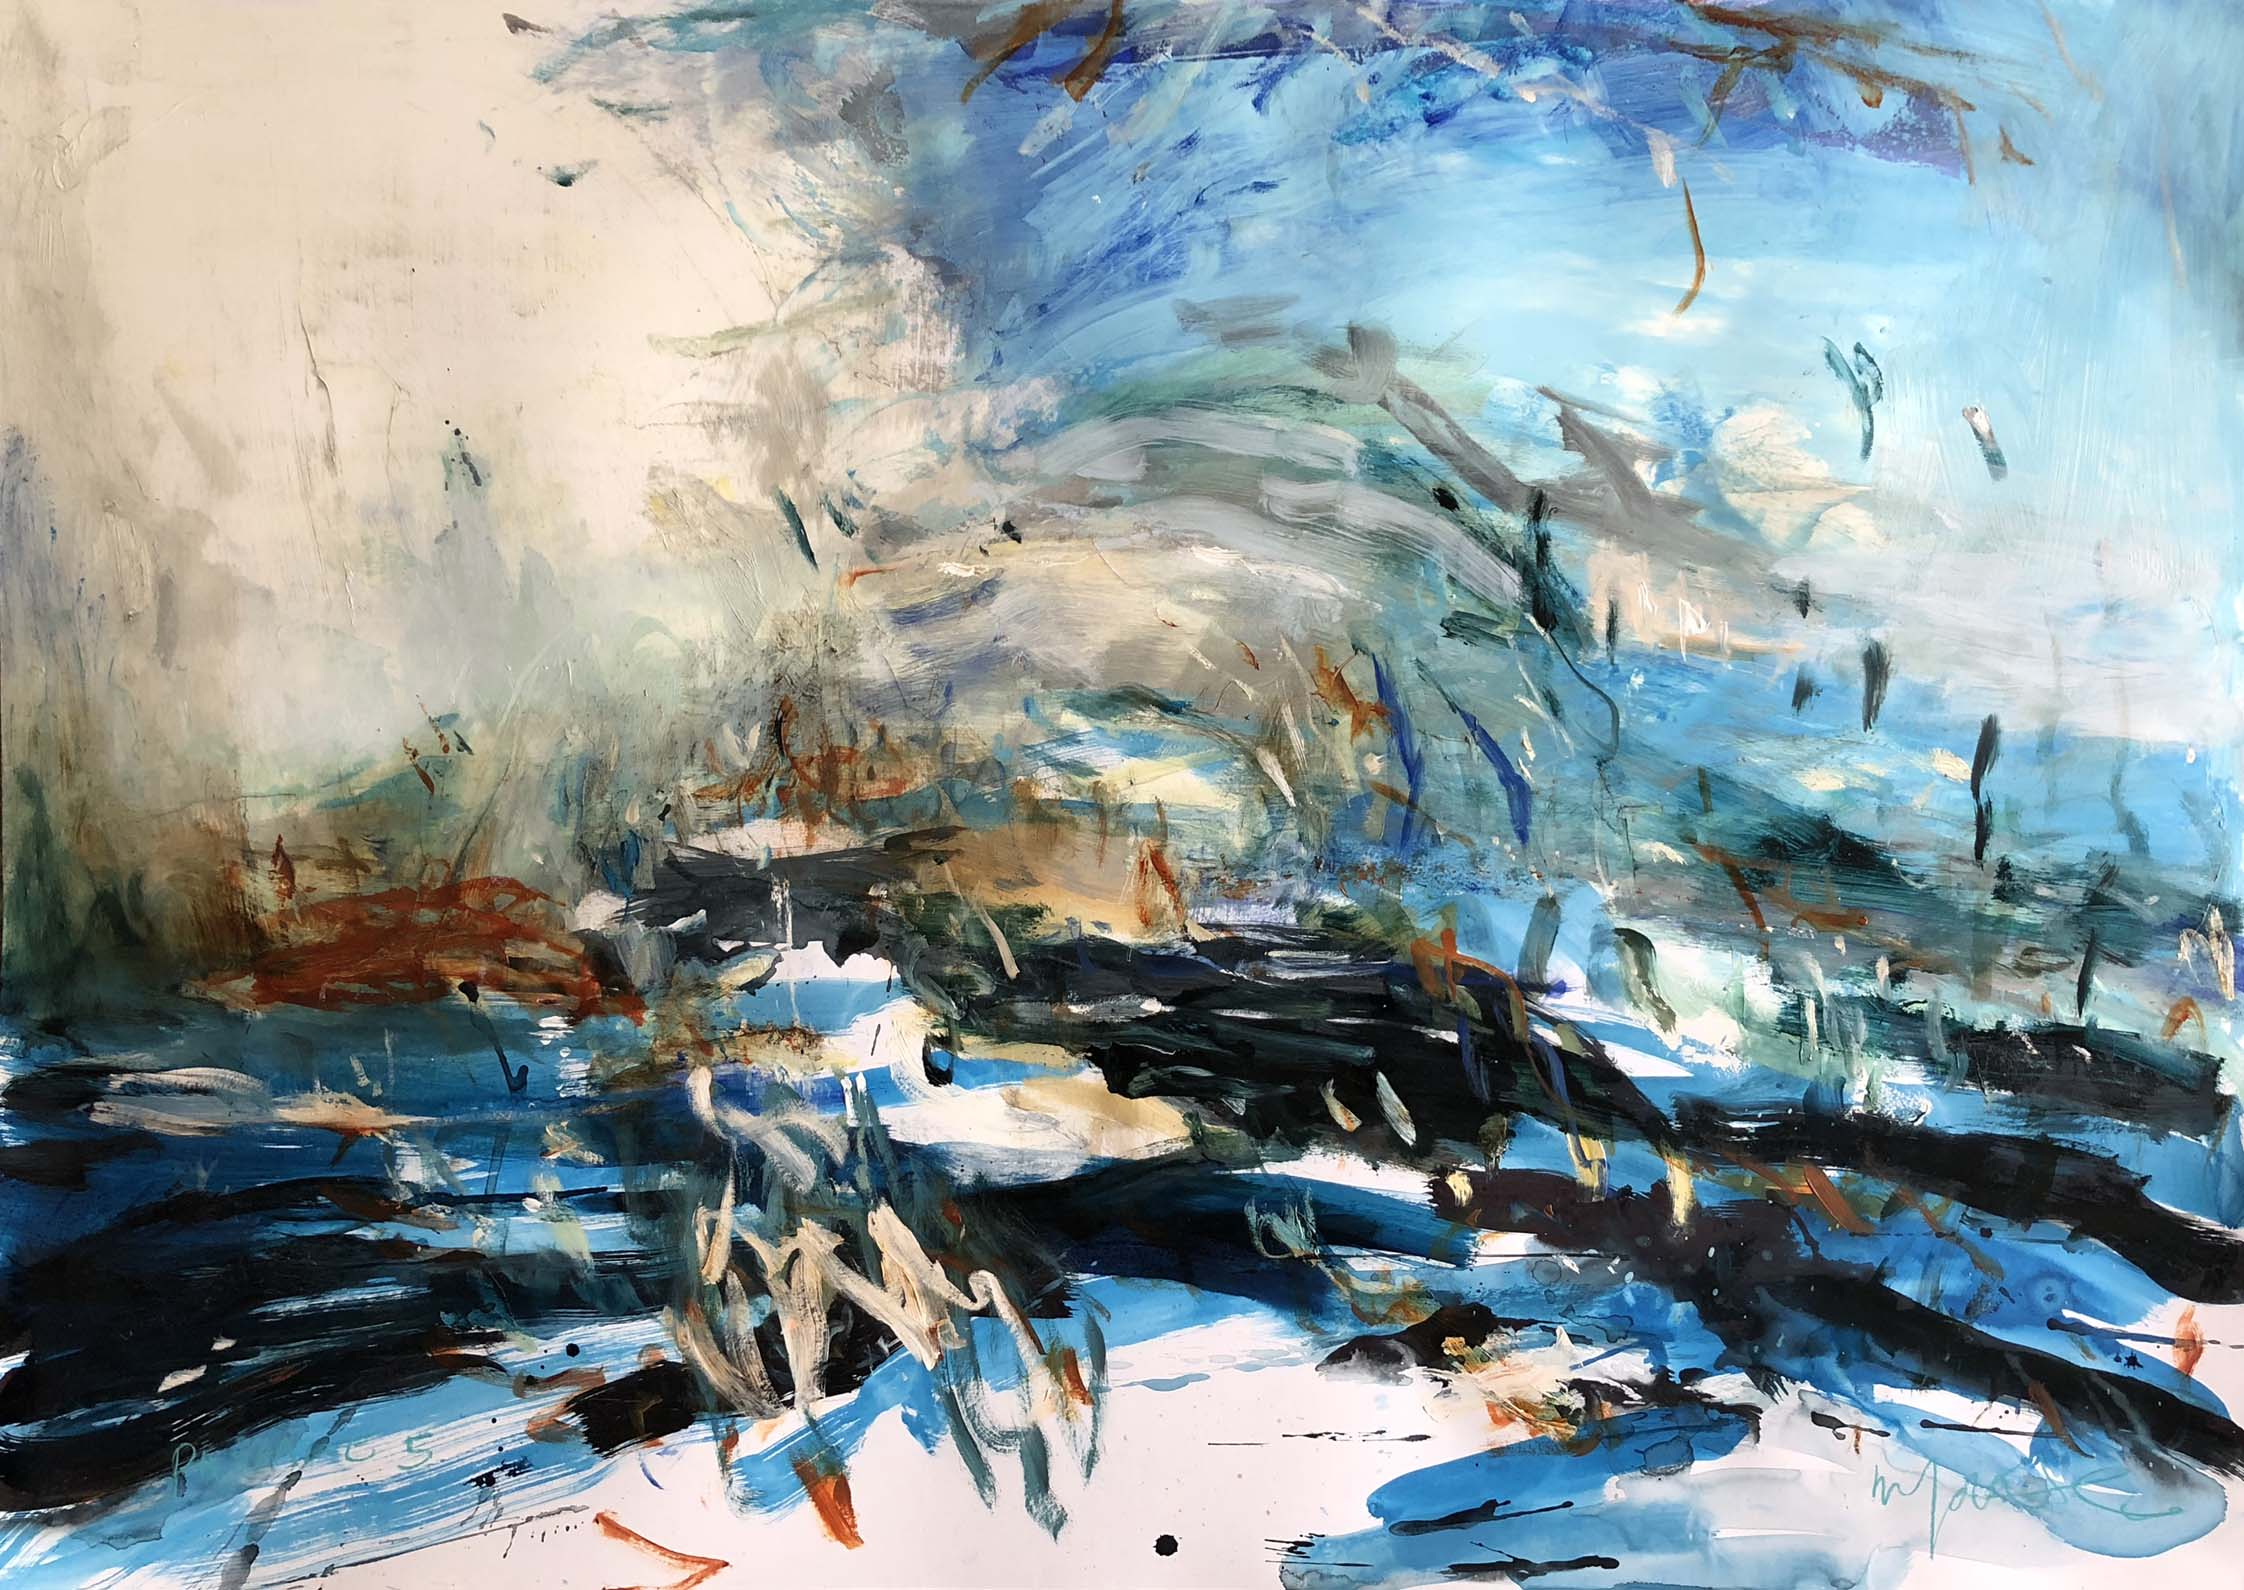 Artist: Mark Johnston  Title: Passage 5  Size: 140 x 100 cm  Medium: Mixed media on paper  Price: £2900   Buy Now